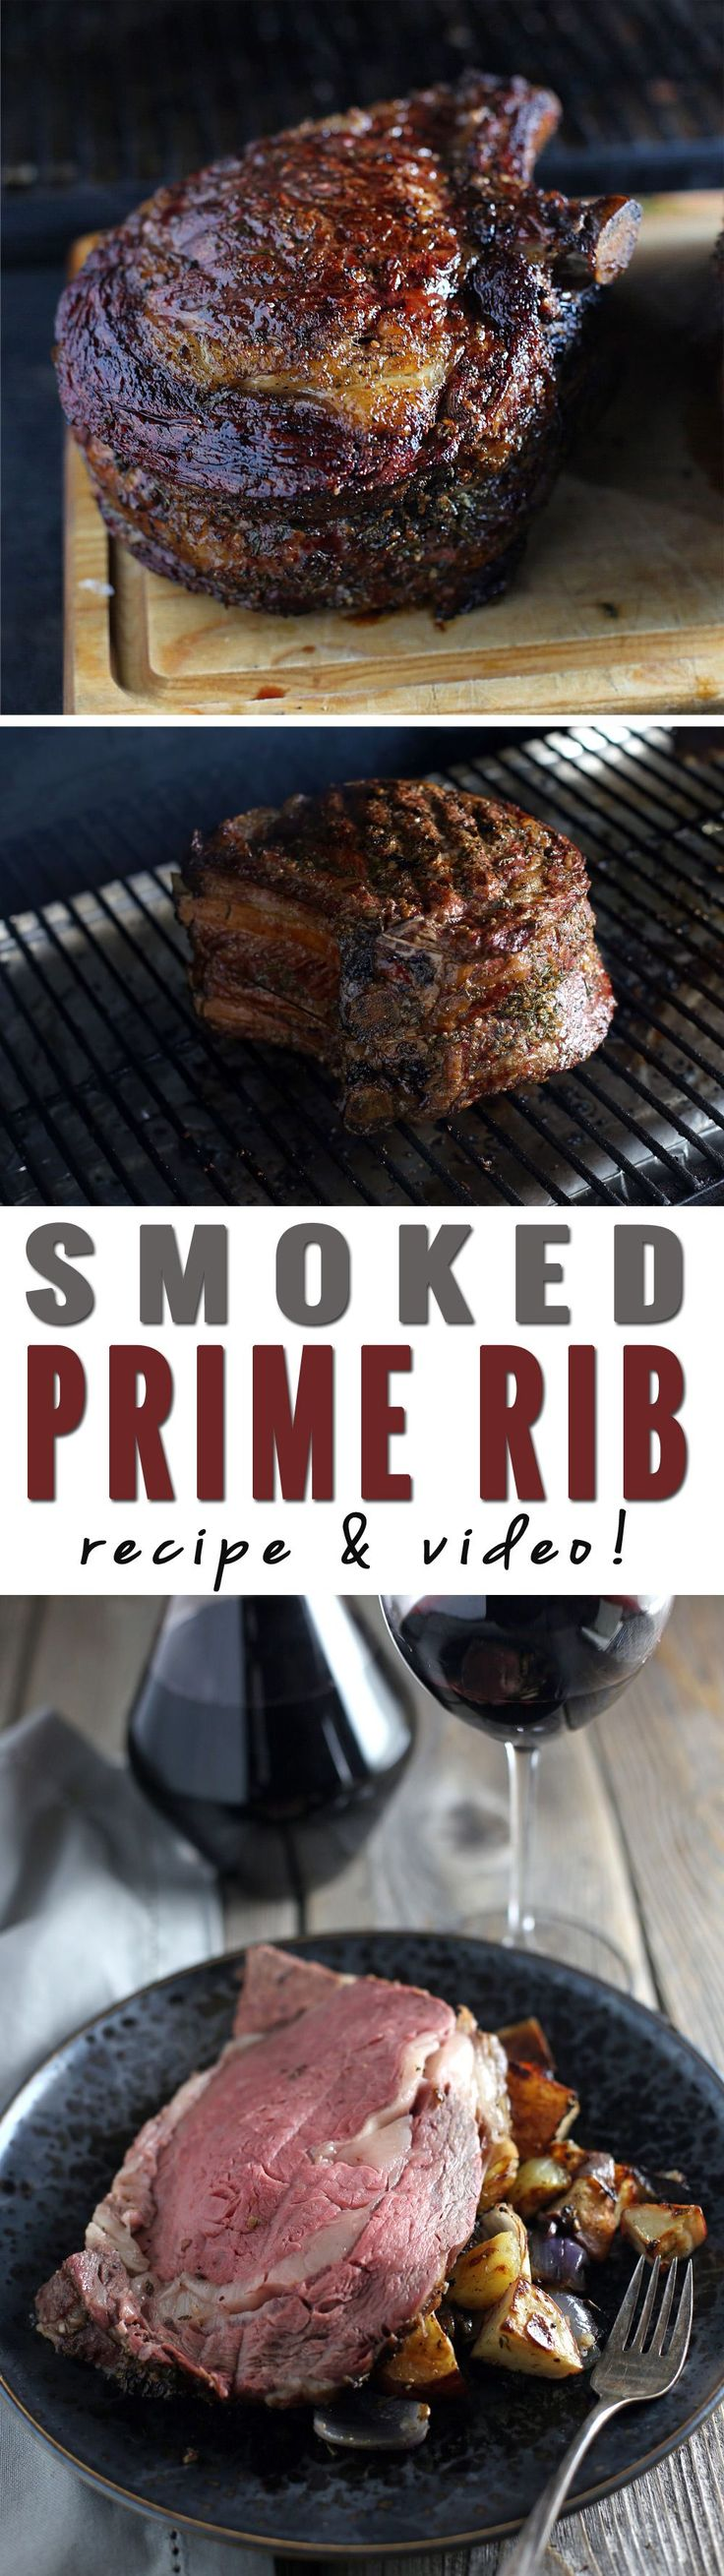 How to Smoke a Prime Rib. Recipe and Video! BBQ Project Idea Project Difficulty: Simple MaritimeVintage.com